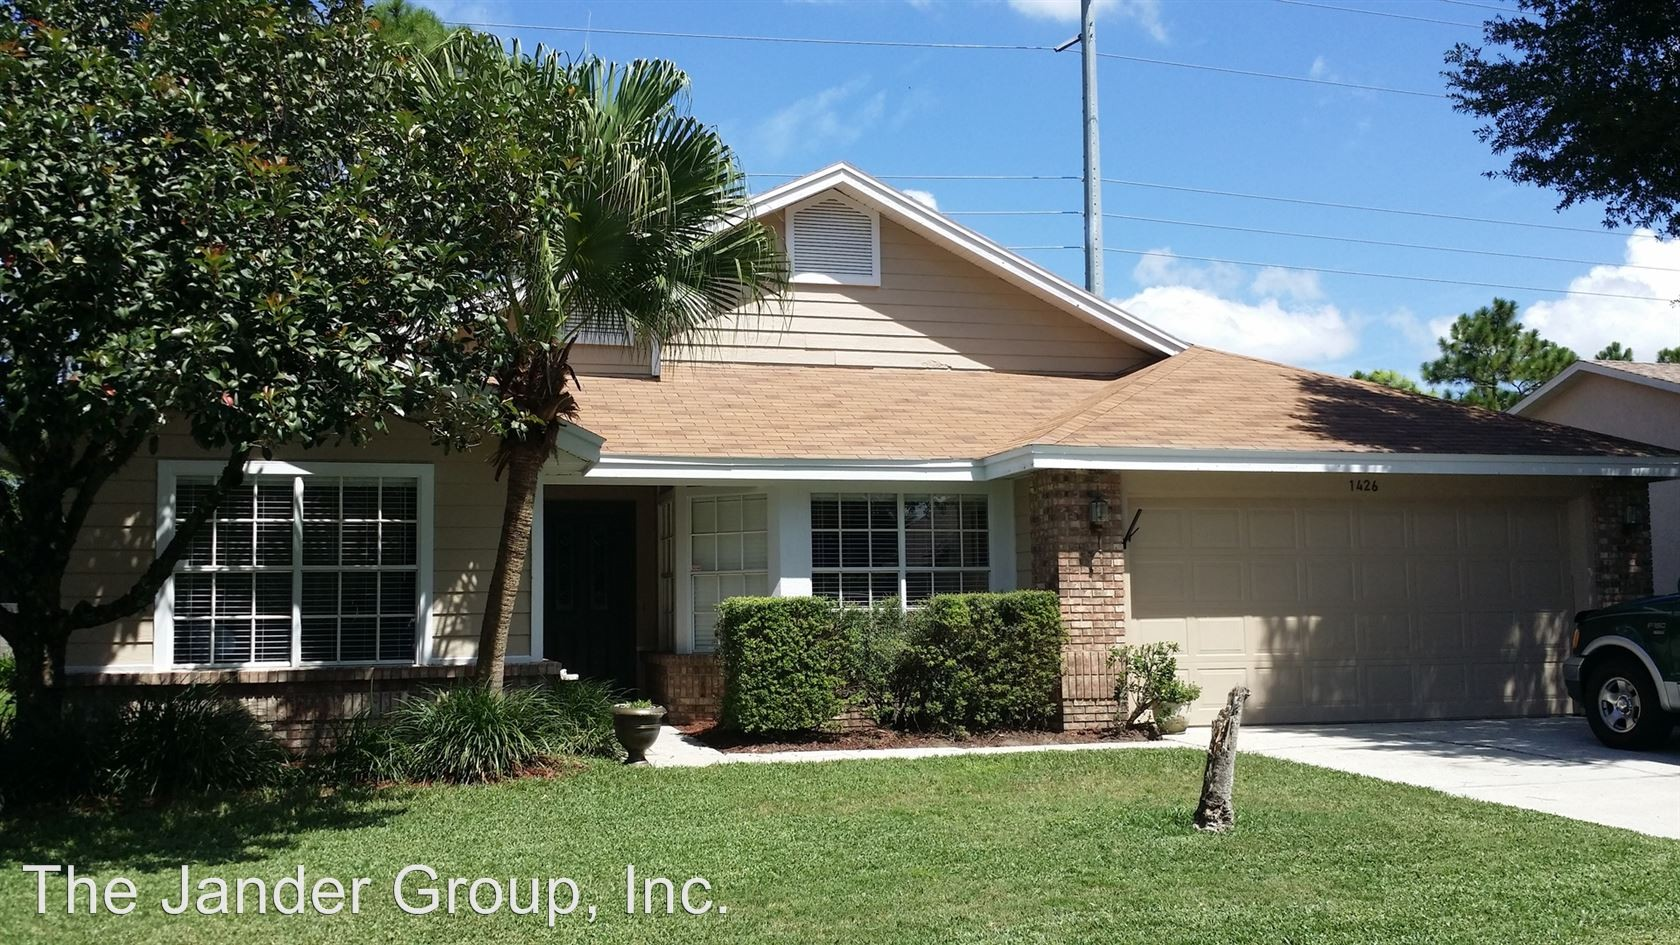 11036 river grove dr orlando fl 32817 3 bedroom apartment for rent padmapper for 3 bedroom apartments near ucf